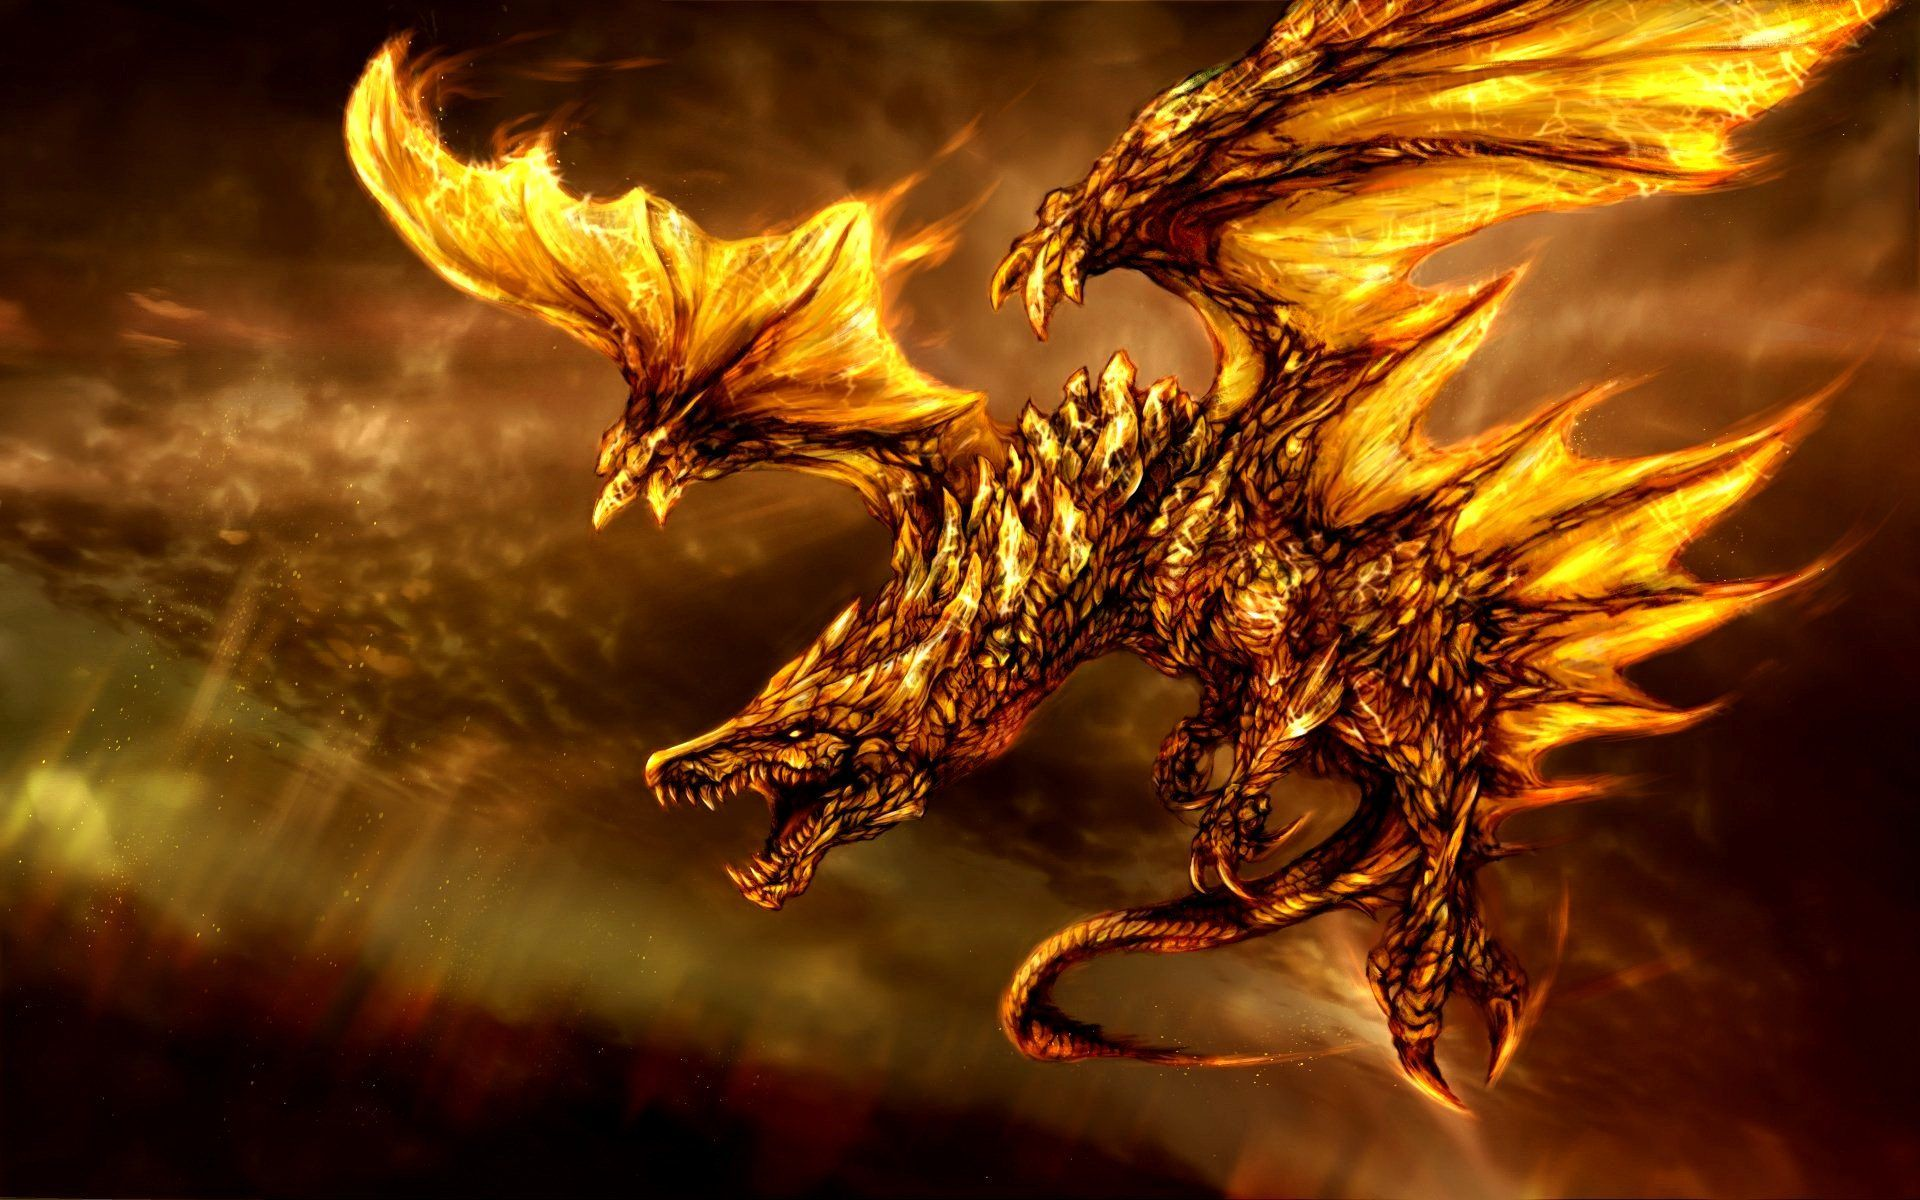 Dragon Desktop Wallpaper